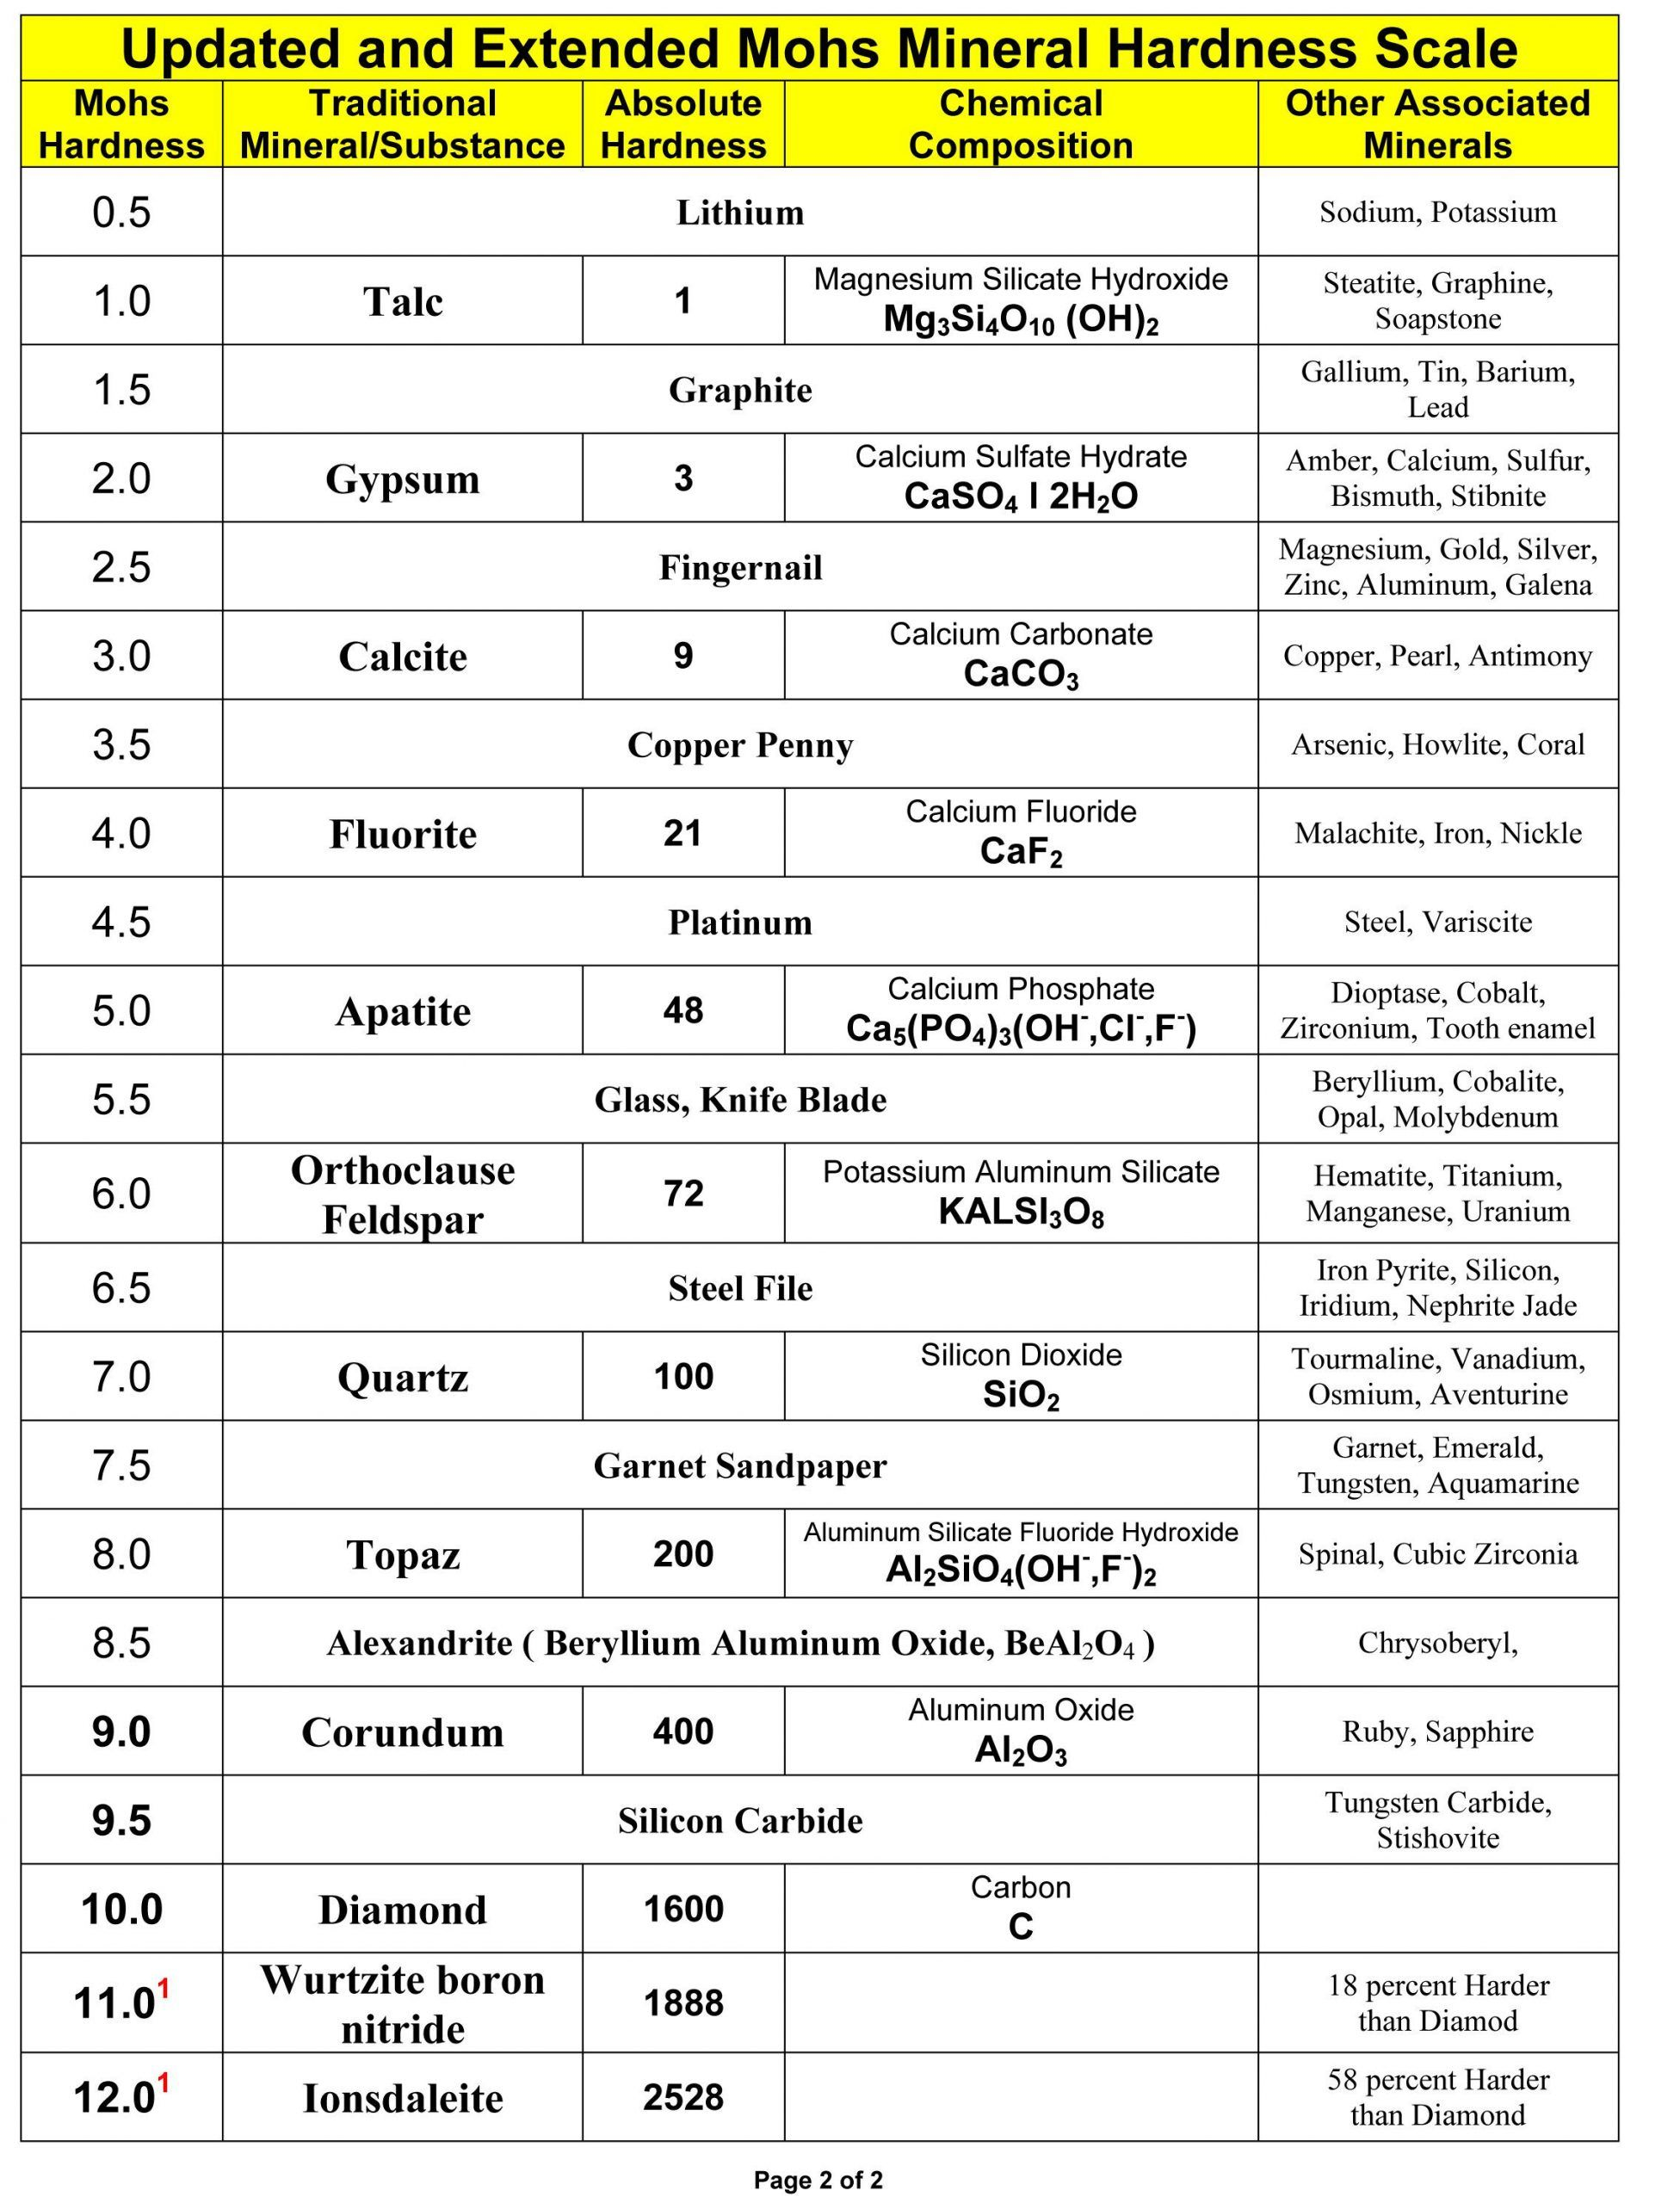 Mohs Hardness Scale Worksheet In 2020 Minerals Geology Rocks And Minerals